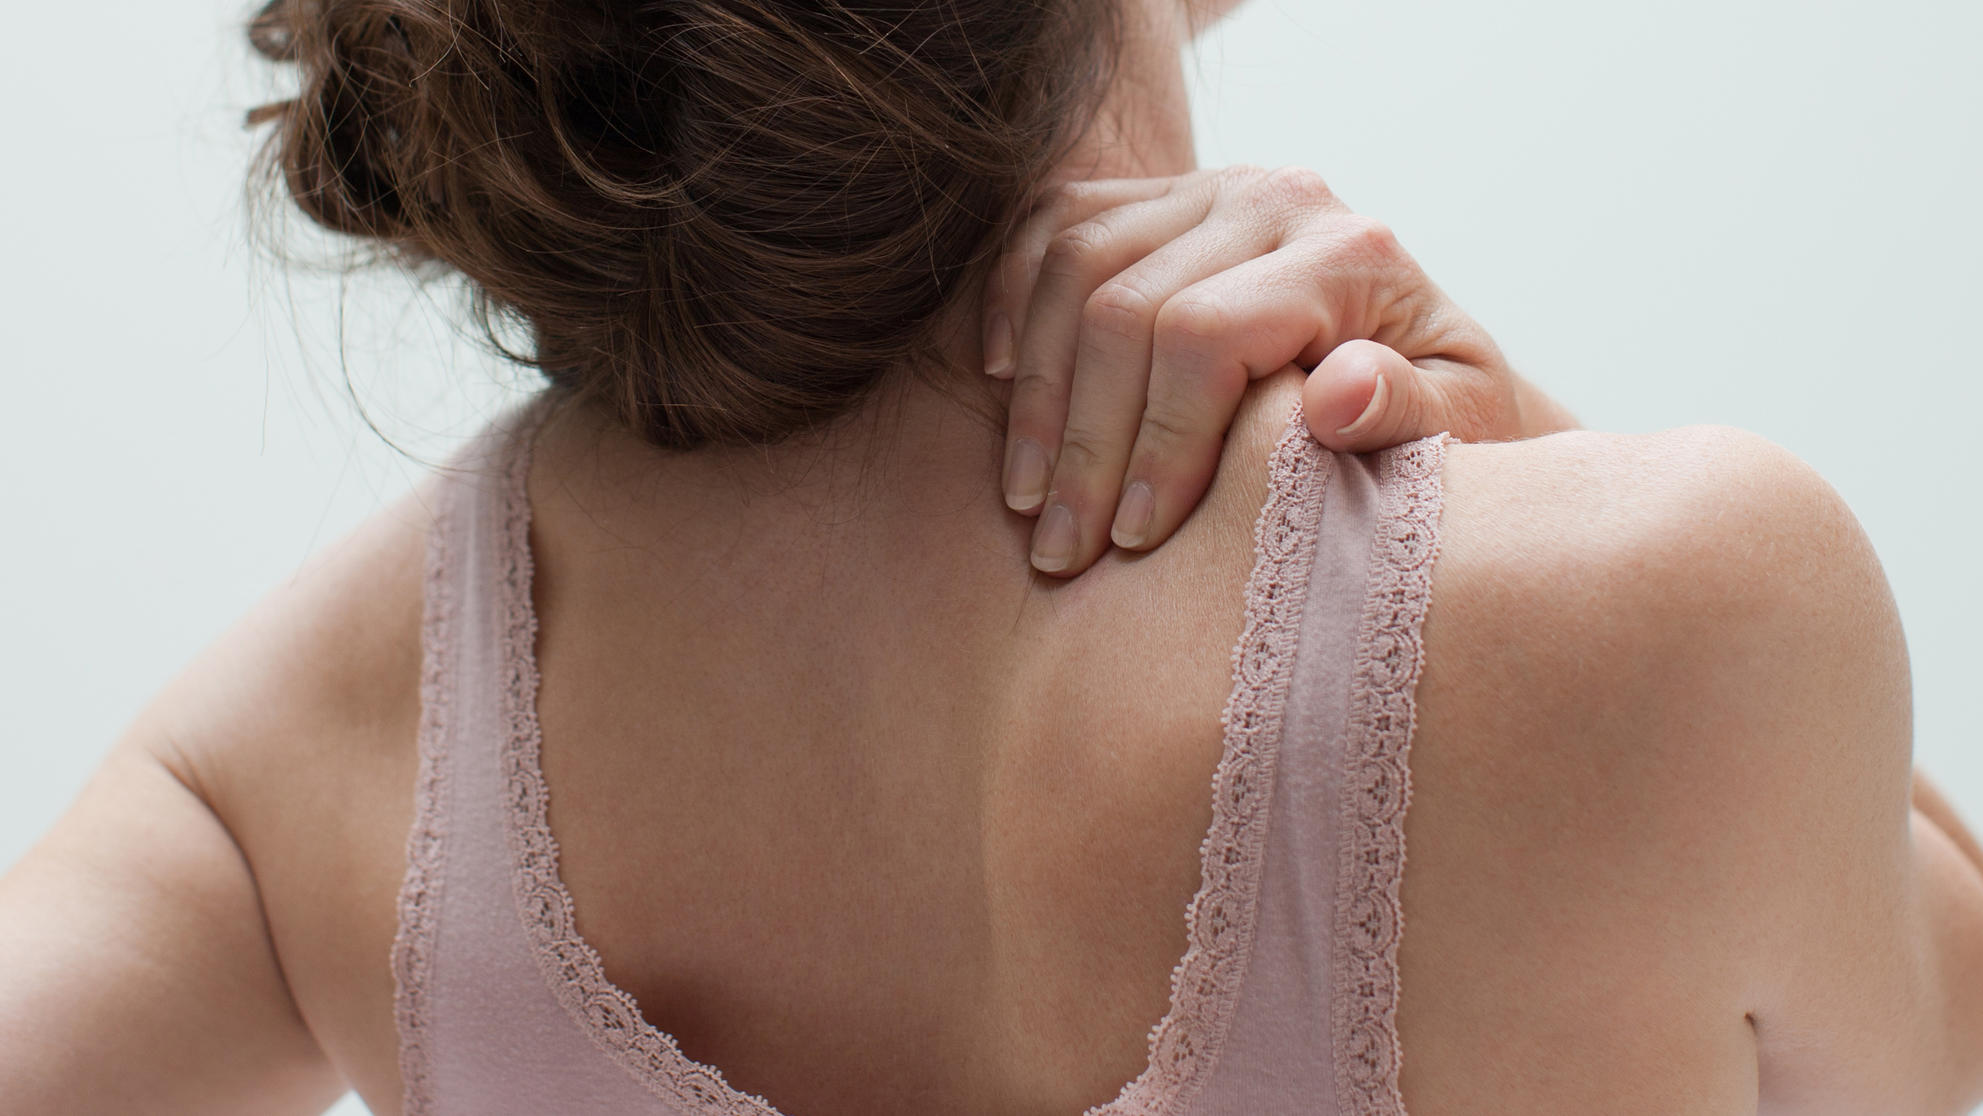 psoriatic-arthritis-back-neck-pain